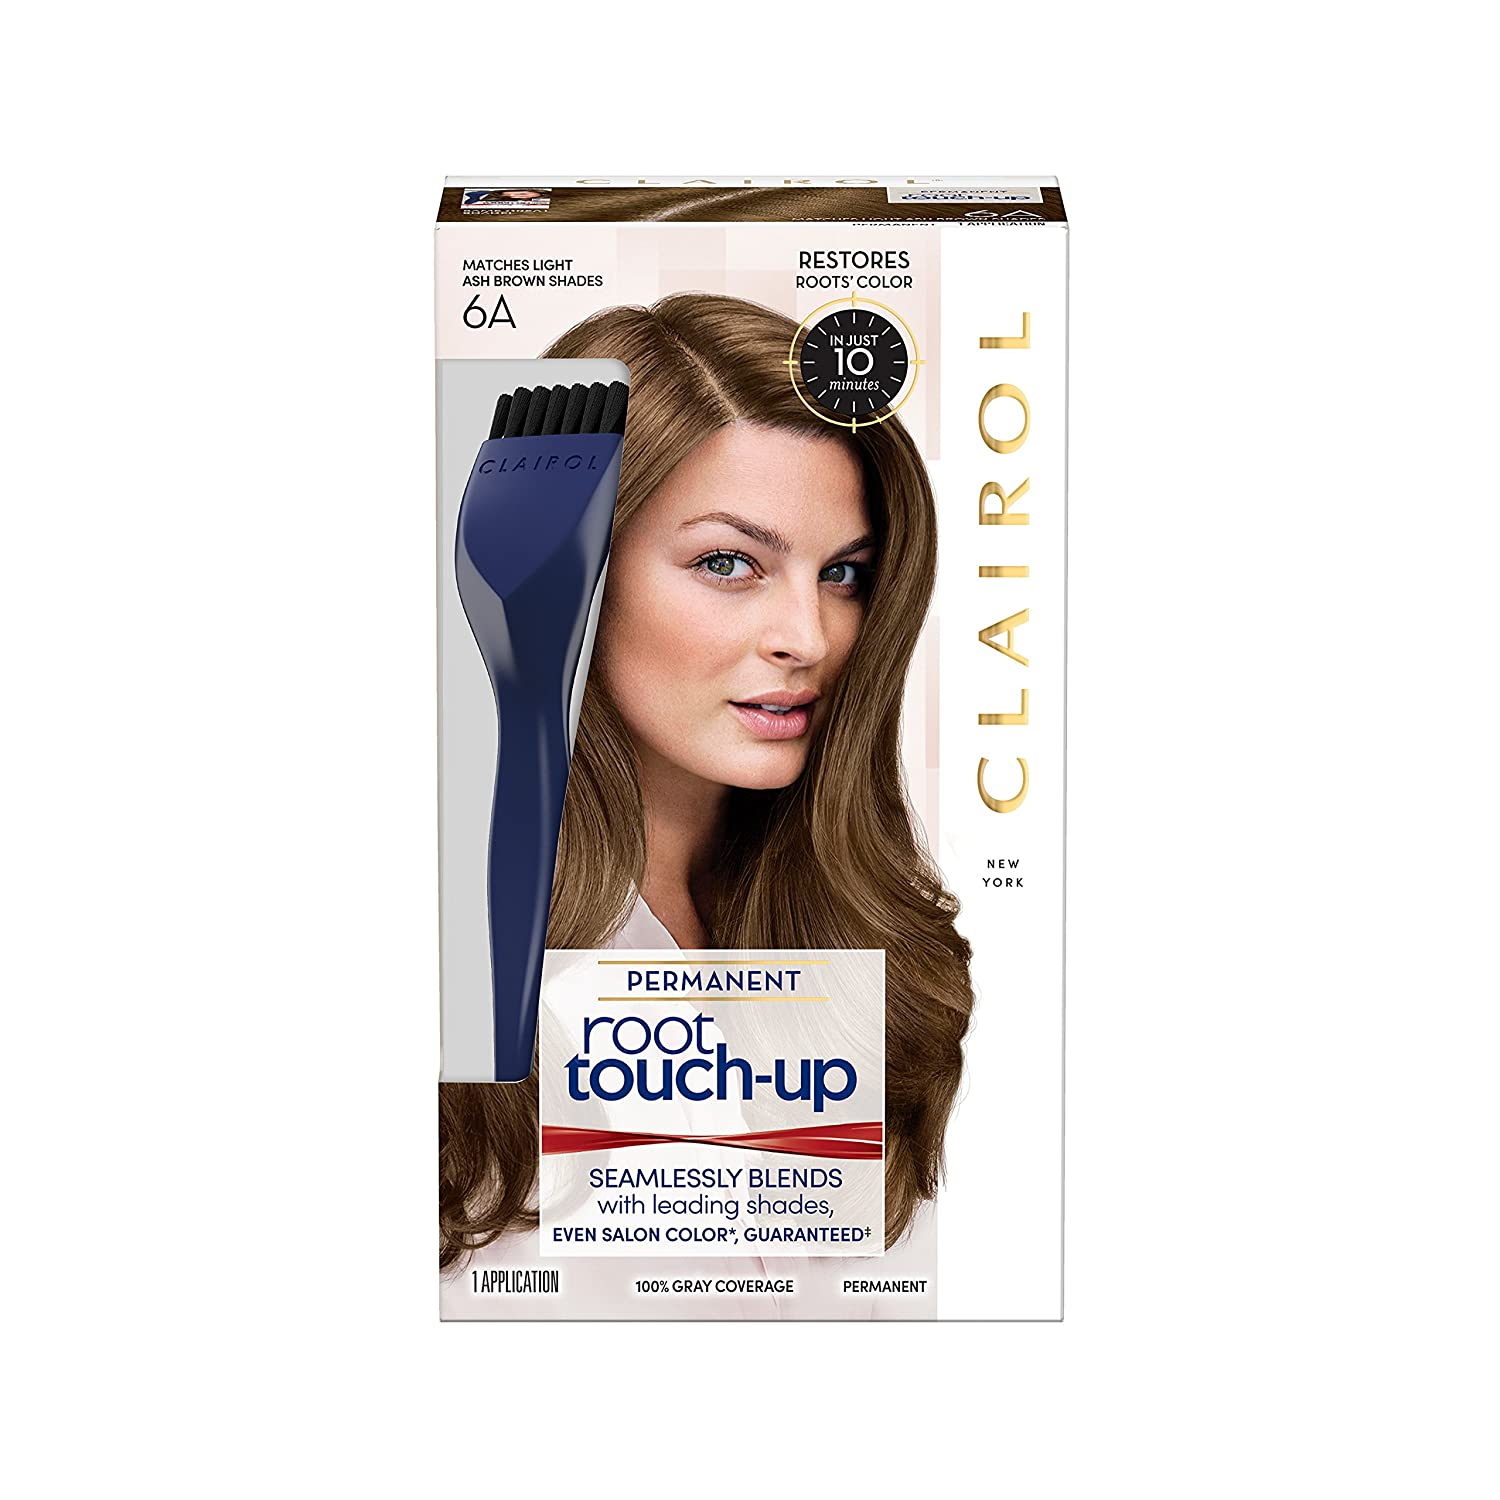 Clairol Nice 'n Easy Root Touch-Up, 6A Light Ash Brown, Permanent Hair Color, 1 Kit (Pack of 2) 3.81519E+11